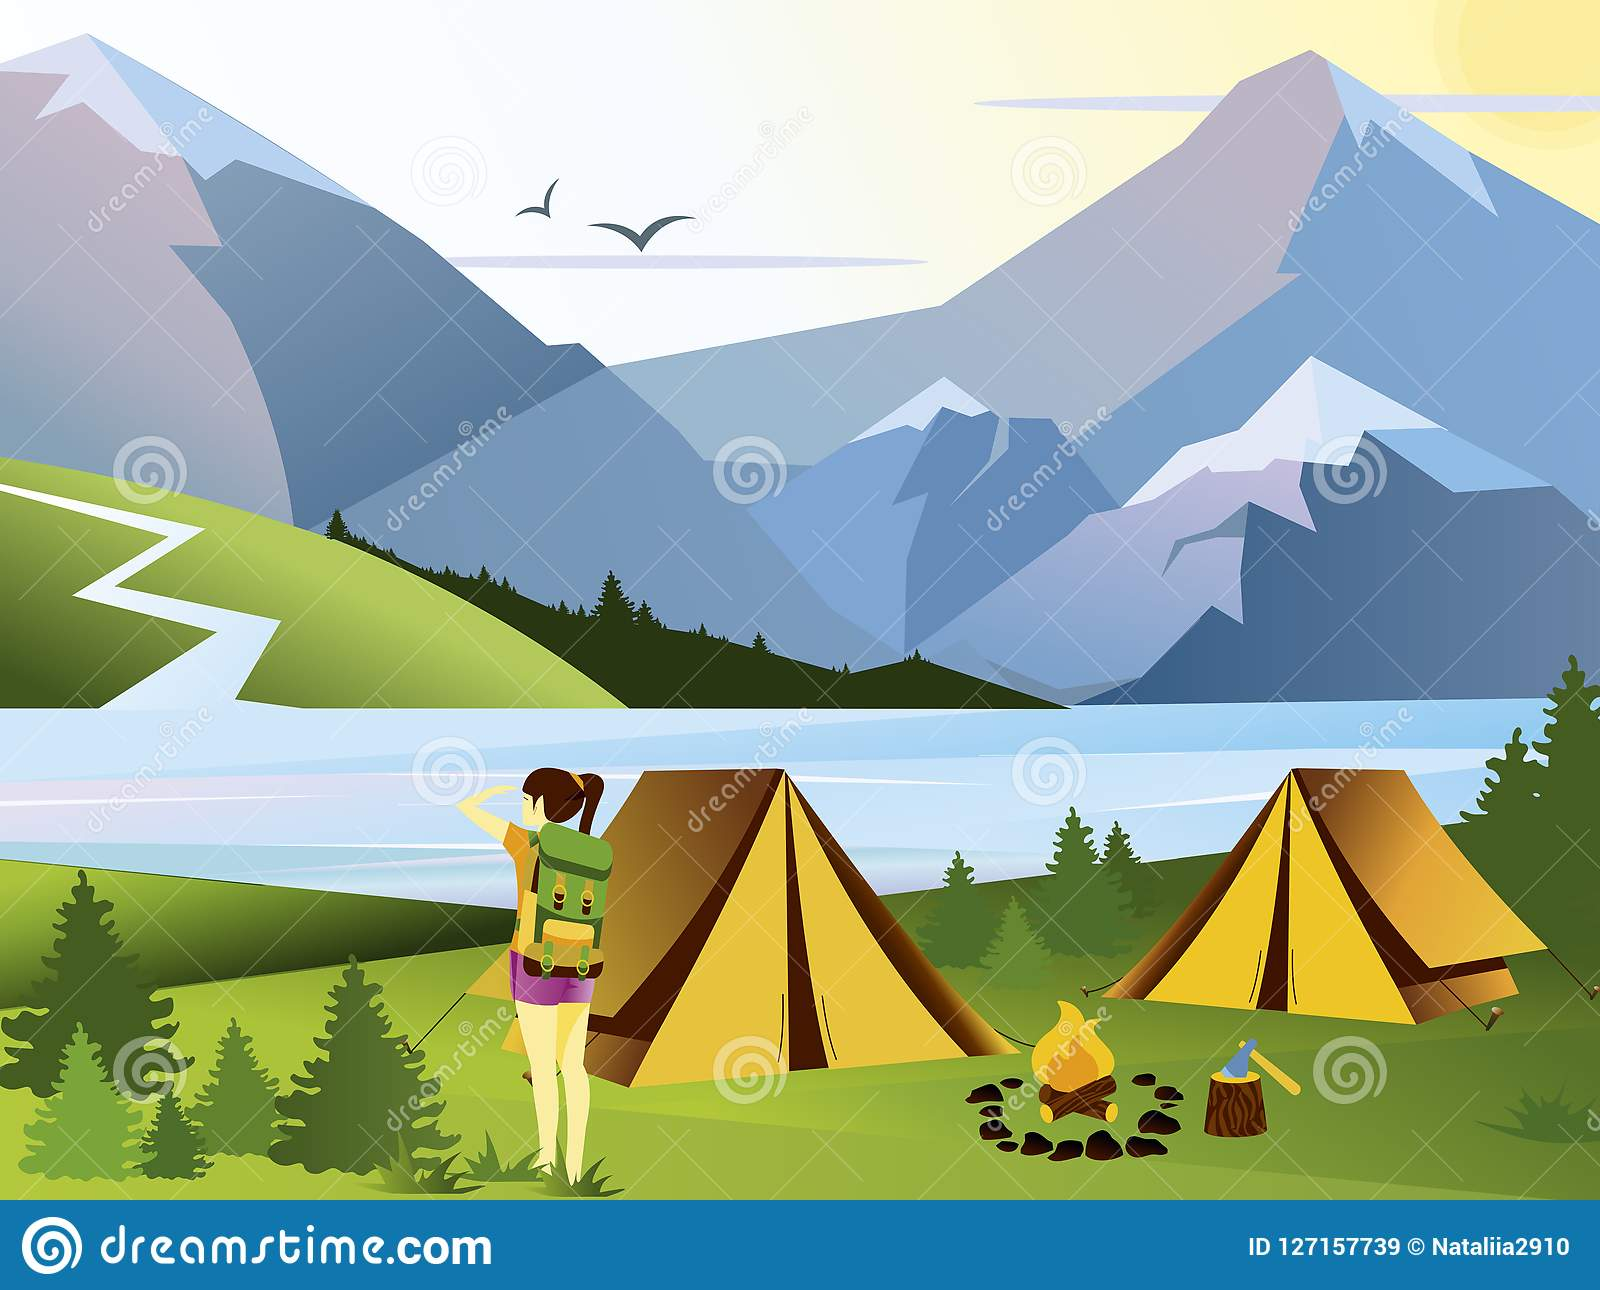 Vector flat illustration camping girl traveler. Nature background with grass, forest, mountains and hills. Outdoor